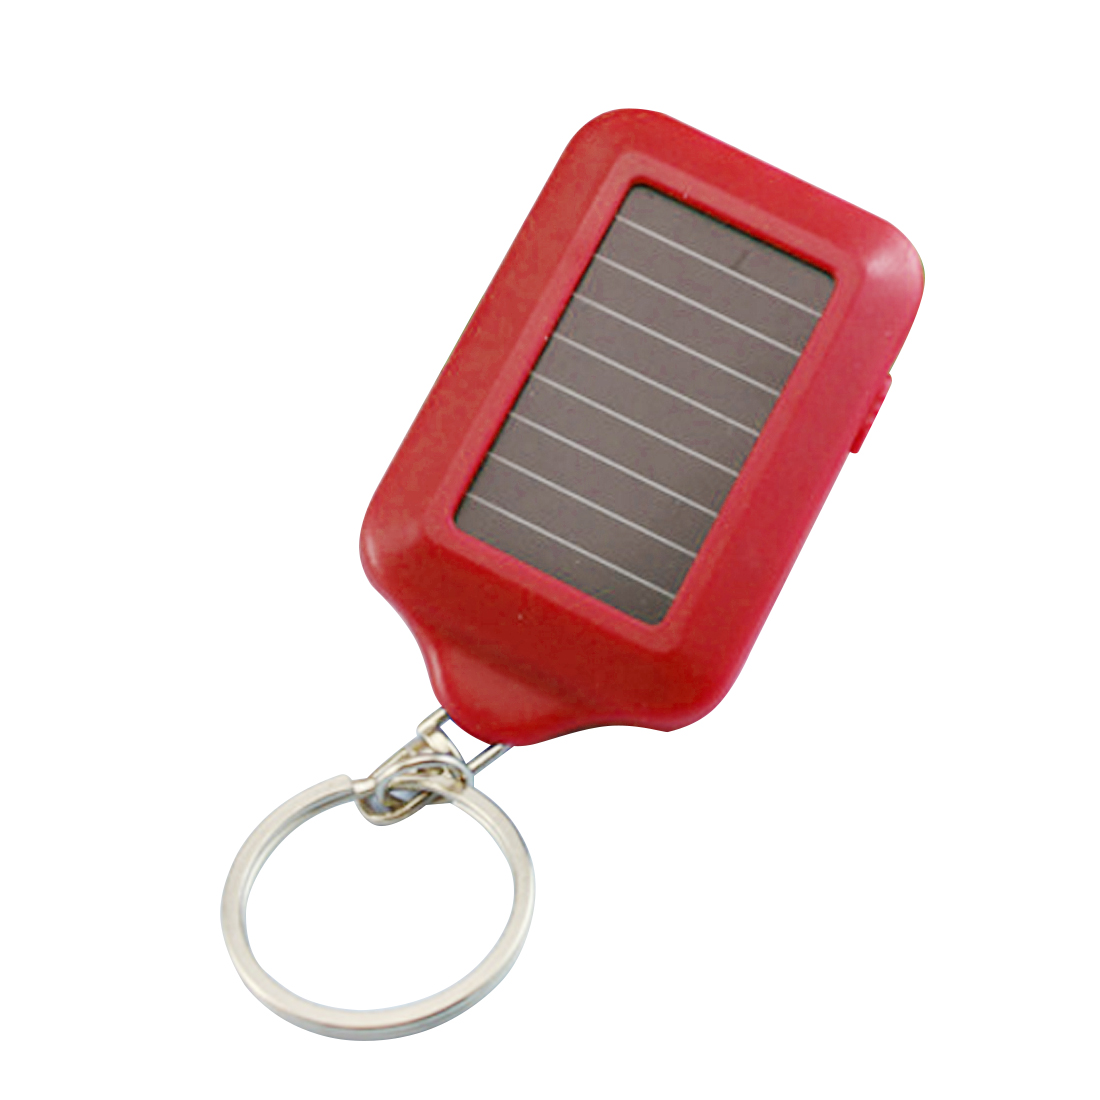 Hot Sell Multi Tool Solar Energy Light 3 LED Electric Torch With Keychain Mini LED Lantern Lighting Outdoor Tools